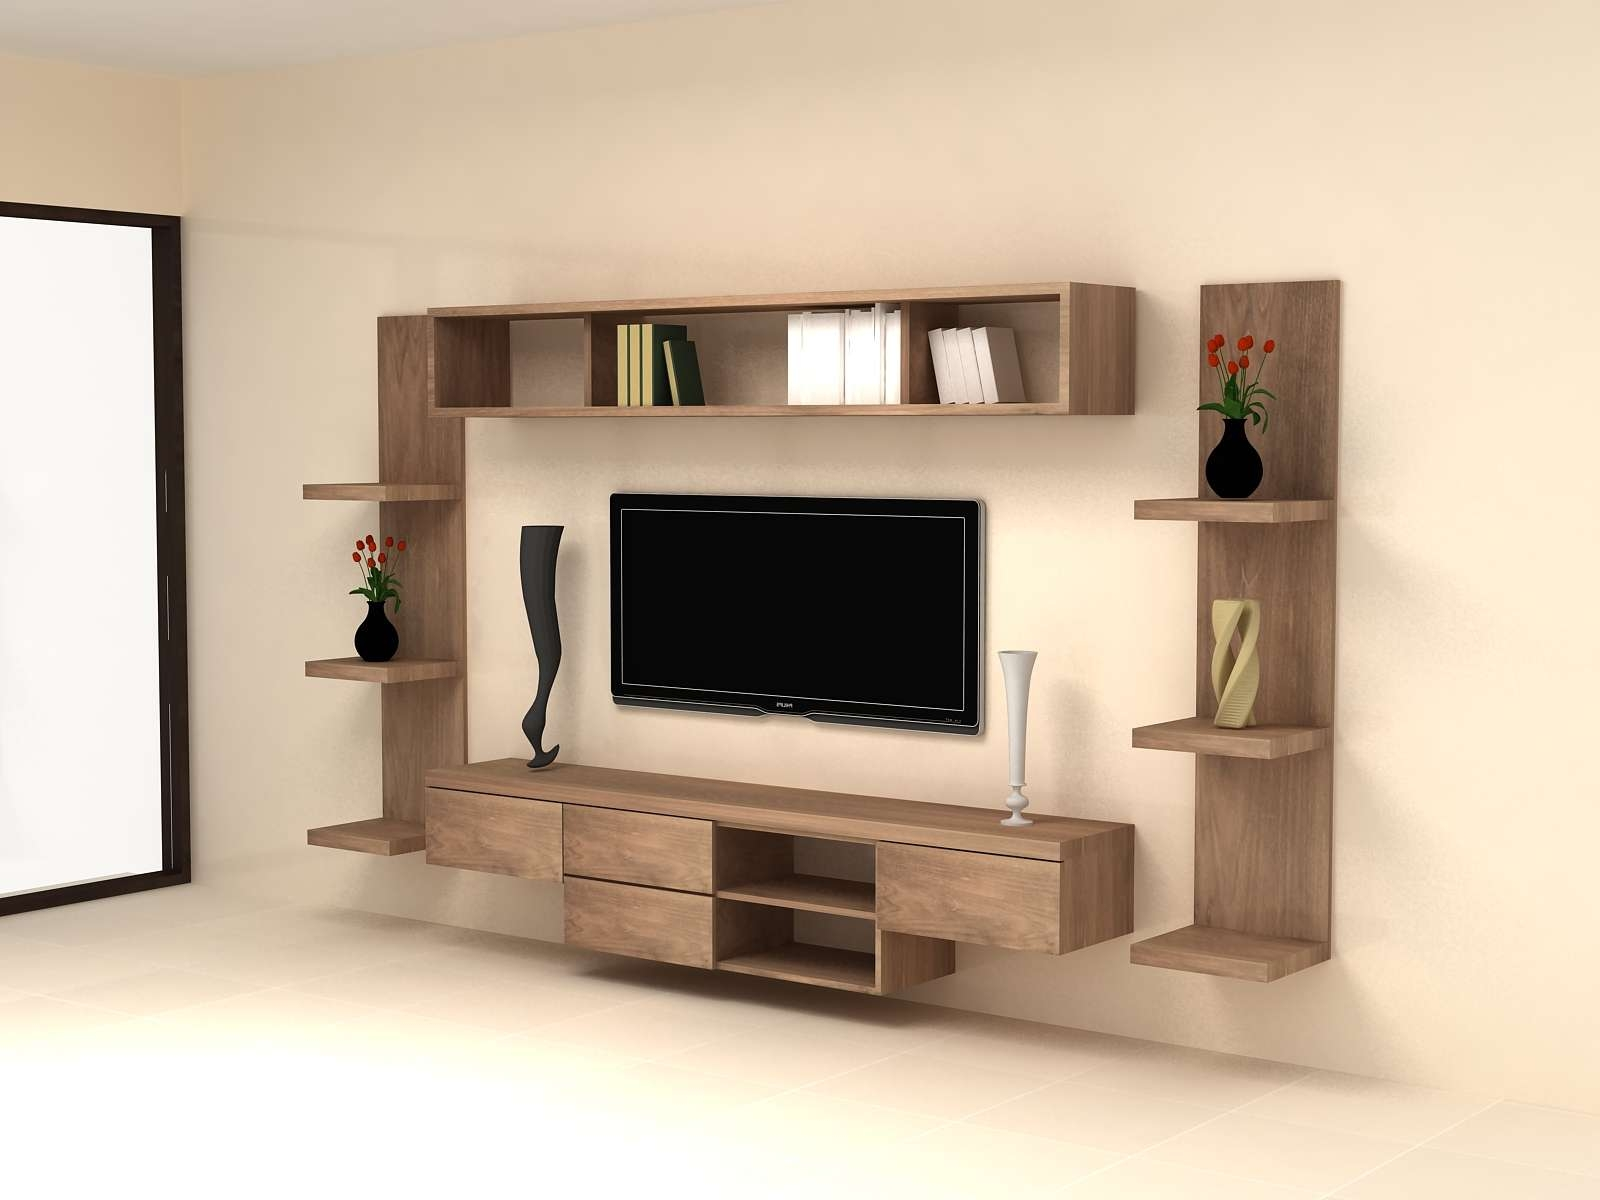 interior design tv cabinet. Black Bedroom Furniture Sets. Home Design Ideas